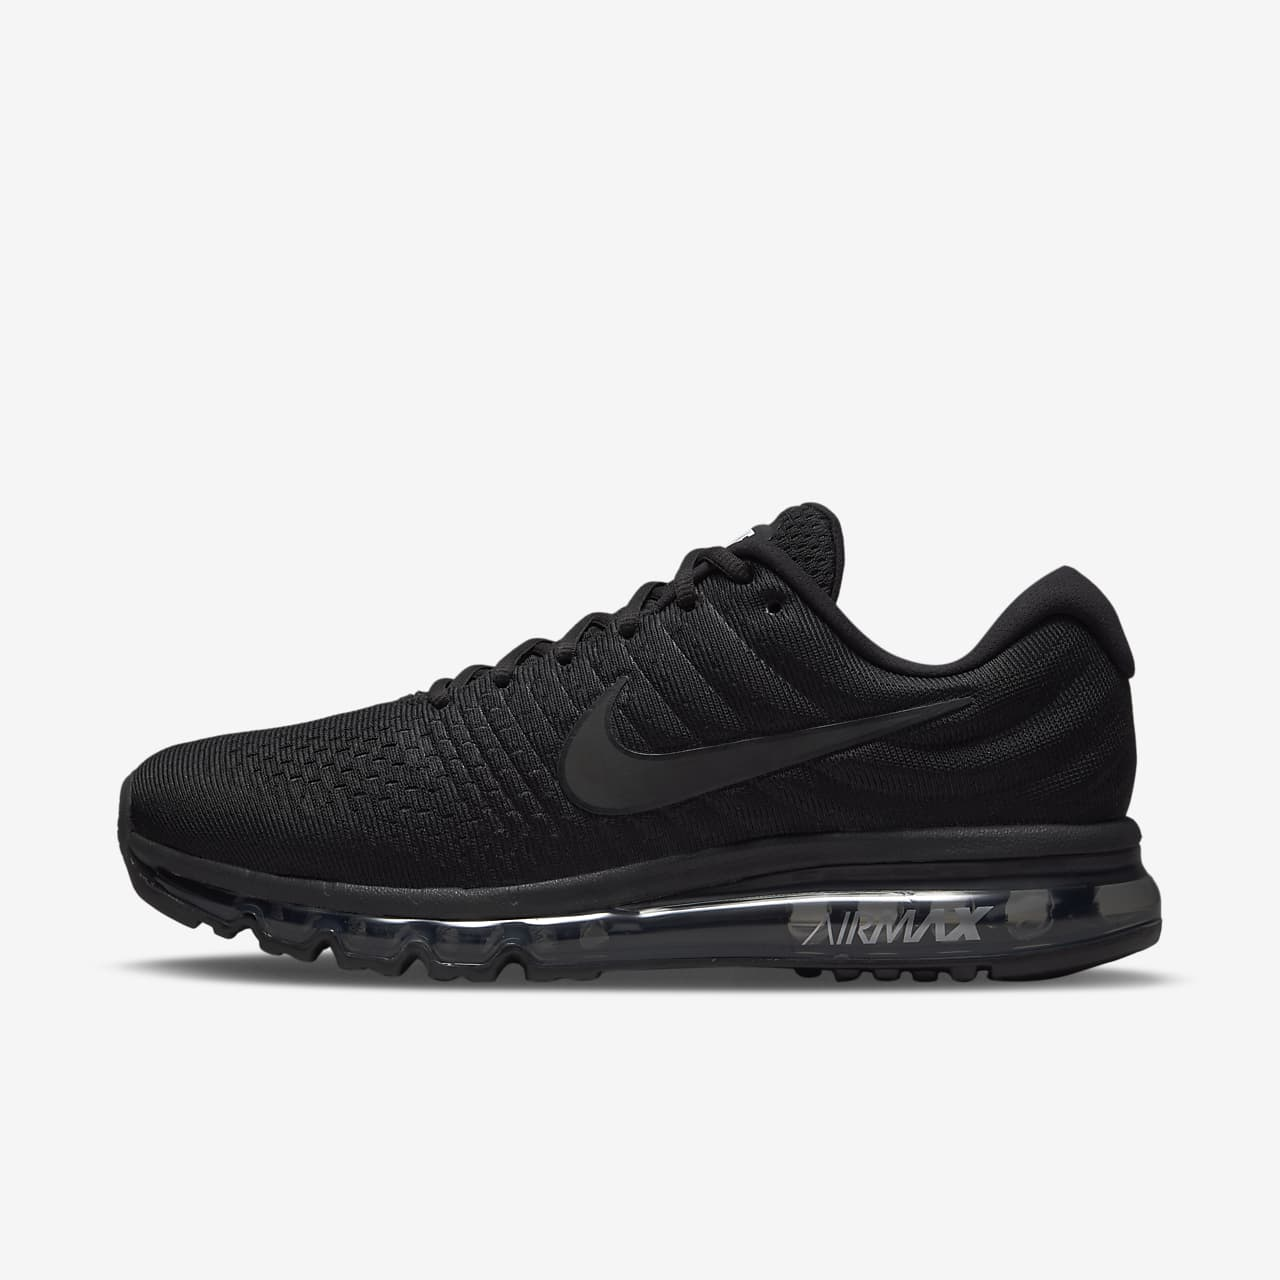 nike air max 2017 women's running shoe nz